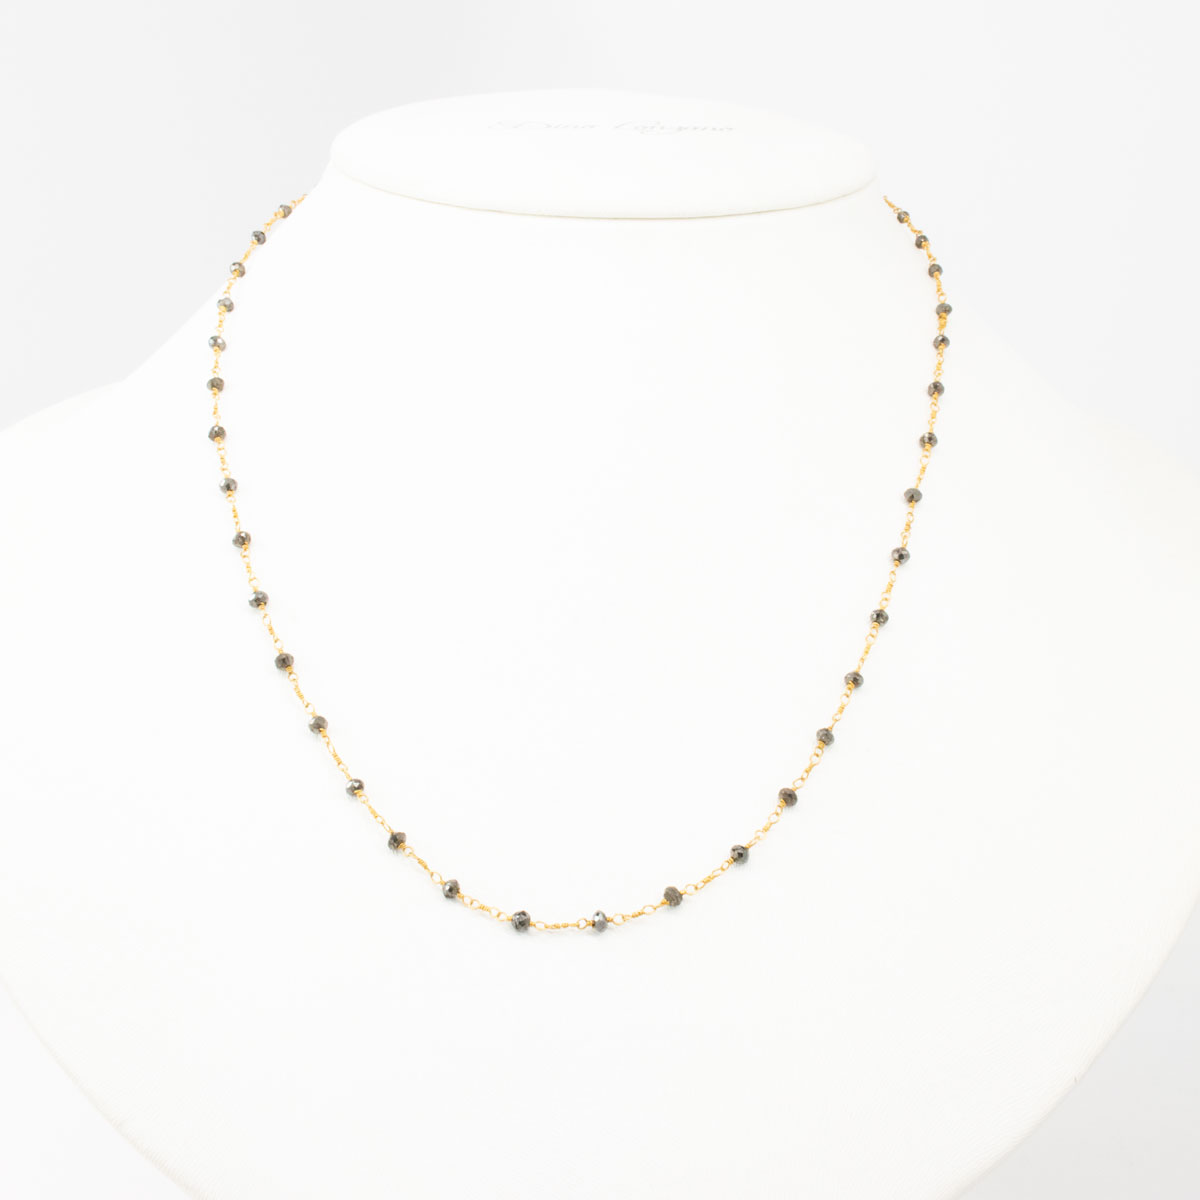 Black Diamond Bead Necklace, 18k Yellow Gold